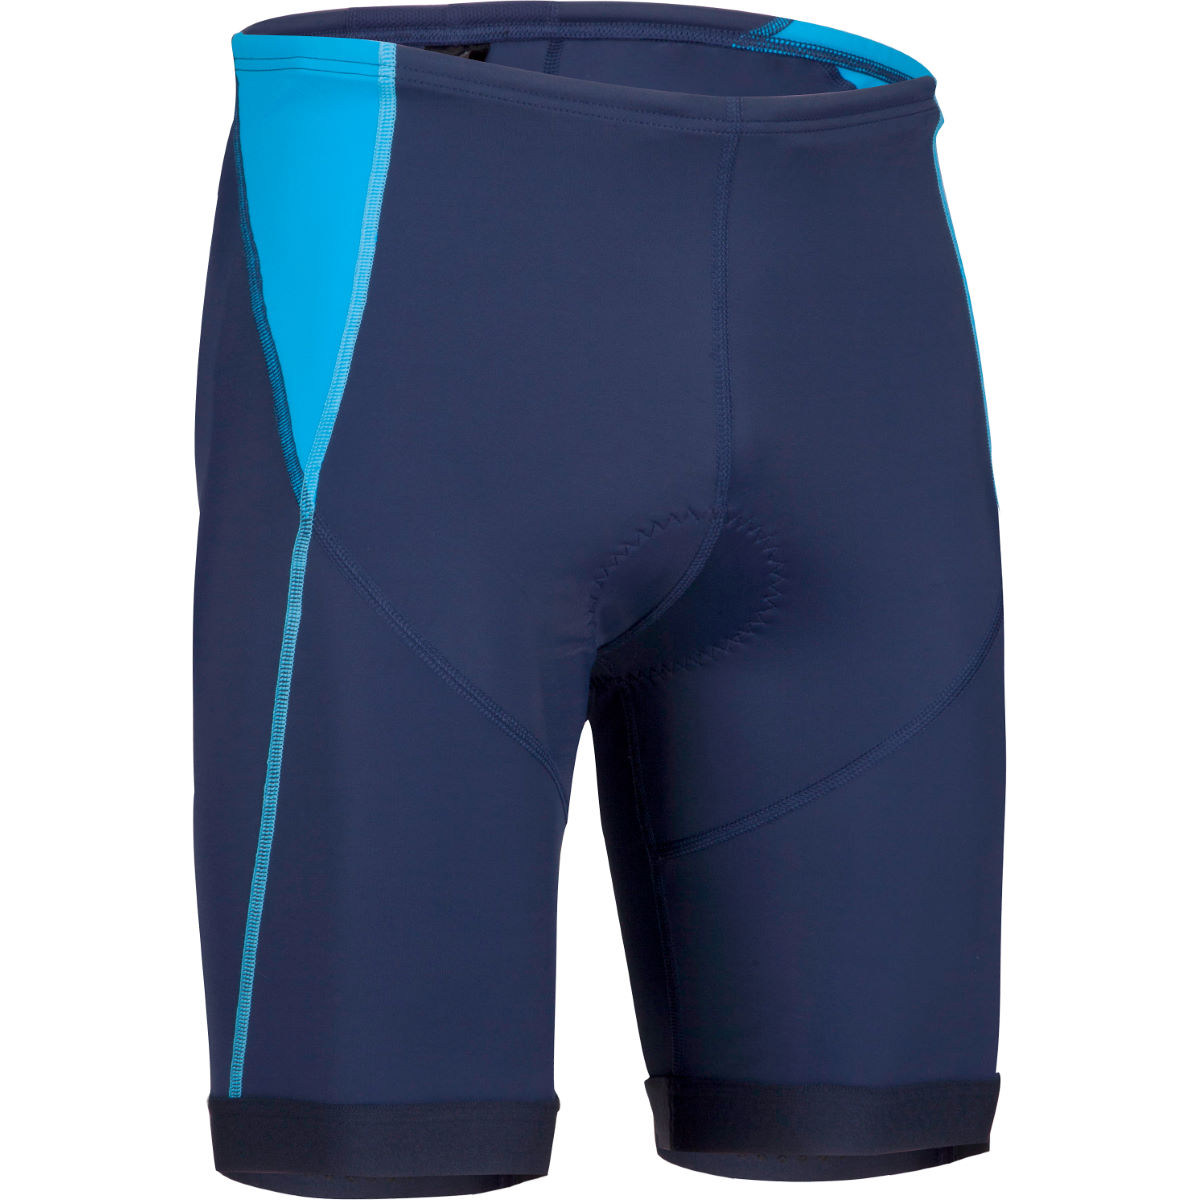 dhb Performance Tri Shorts Blue